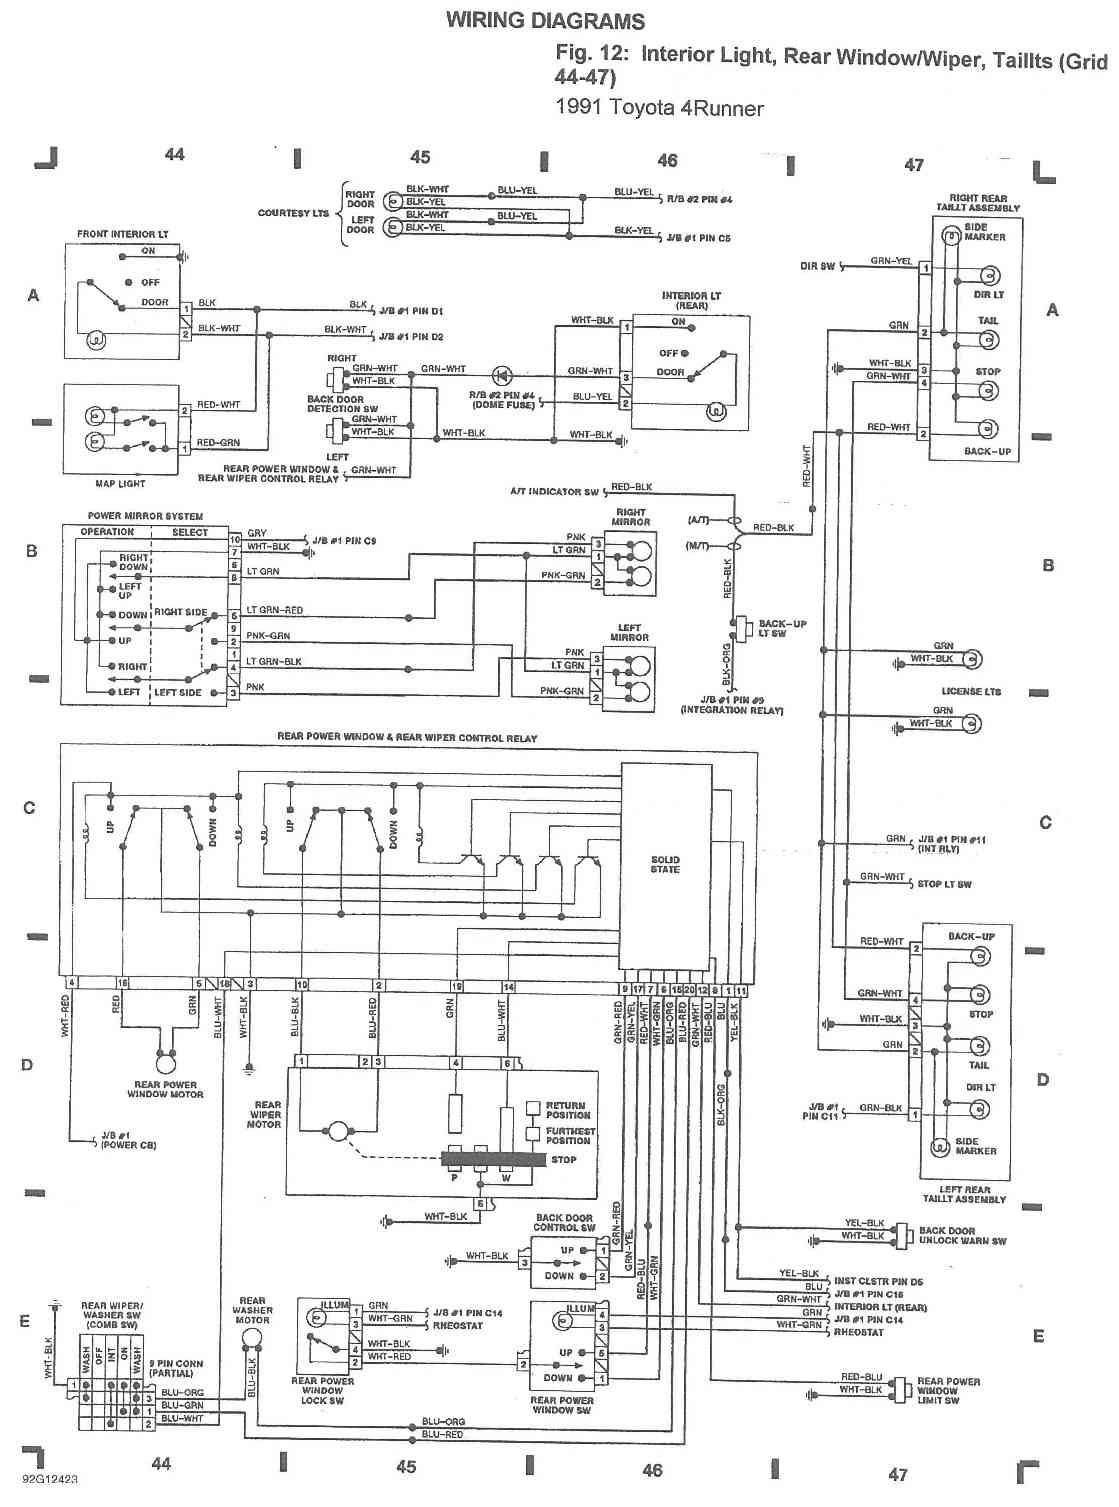 hight resolution of 89 toyota wiring diagram wiring diagram blog 89 4runner wiring diagram